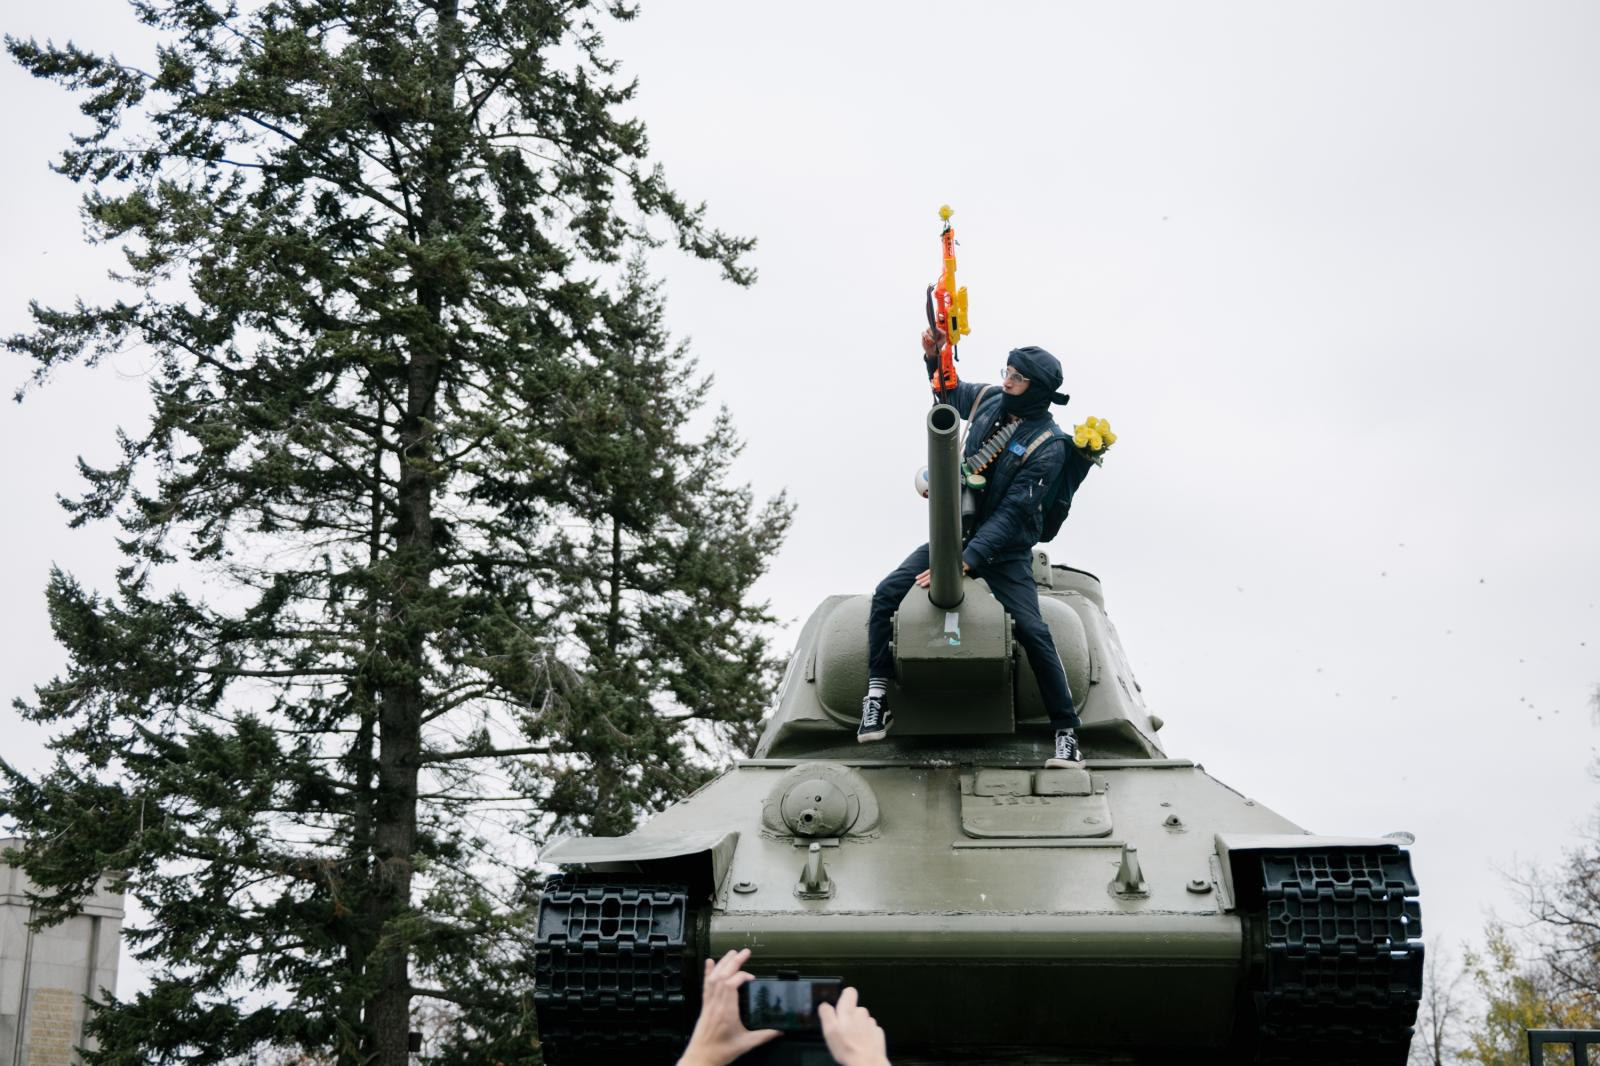 A man climbs Soviet Memorial at Strasse des 17. Juni with a plastic gun for a photo.